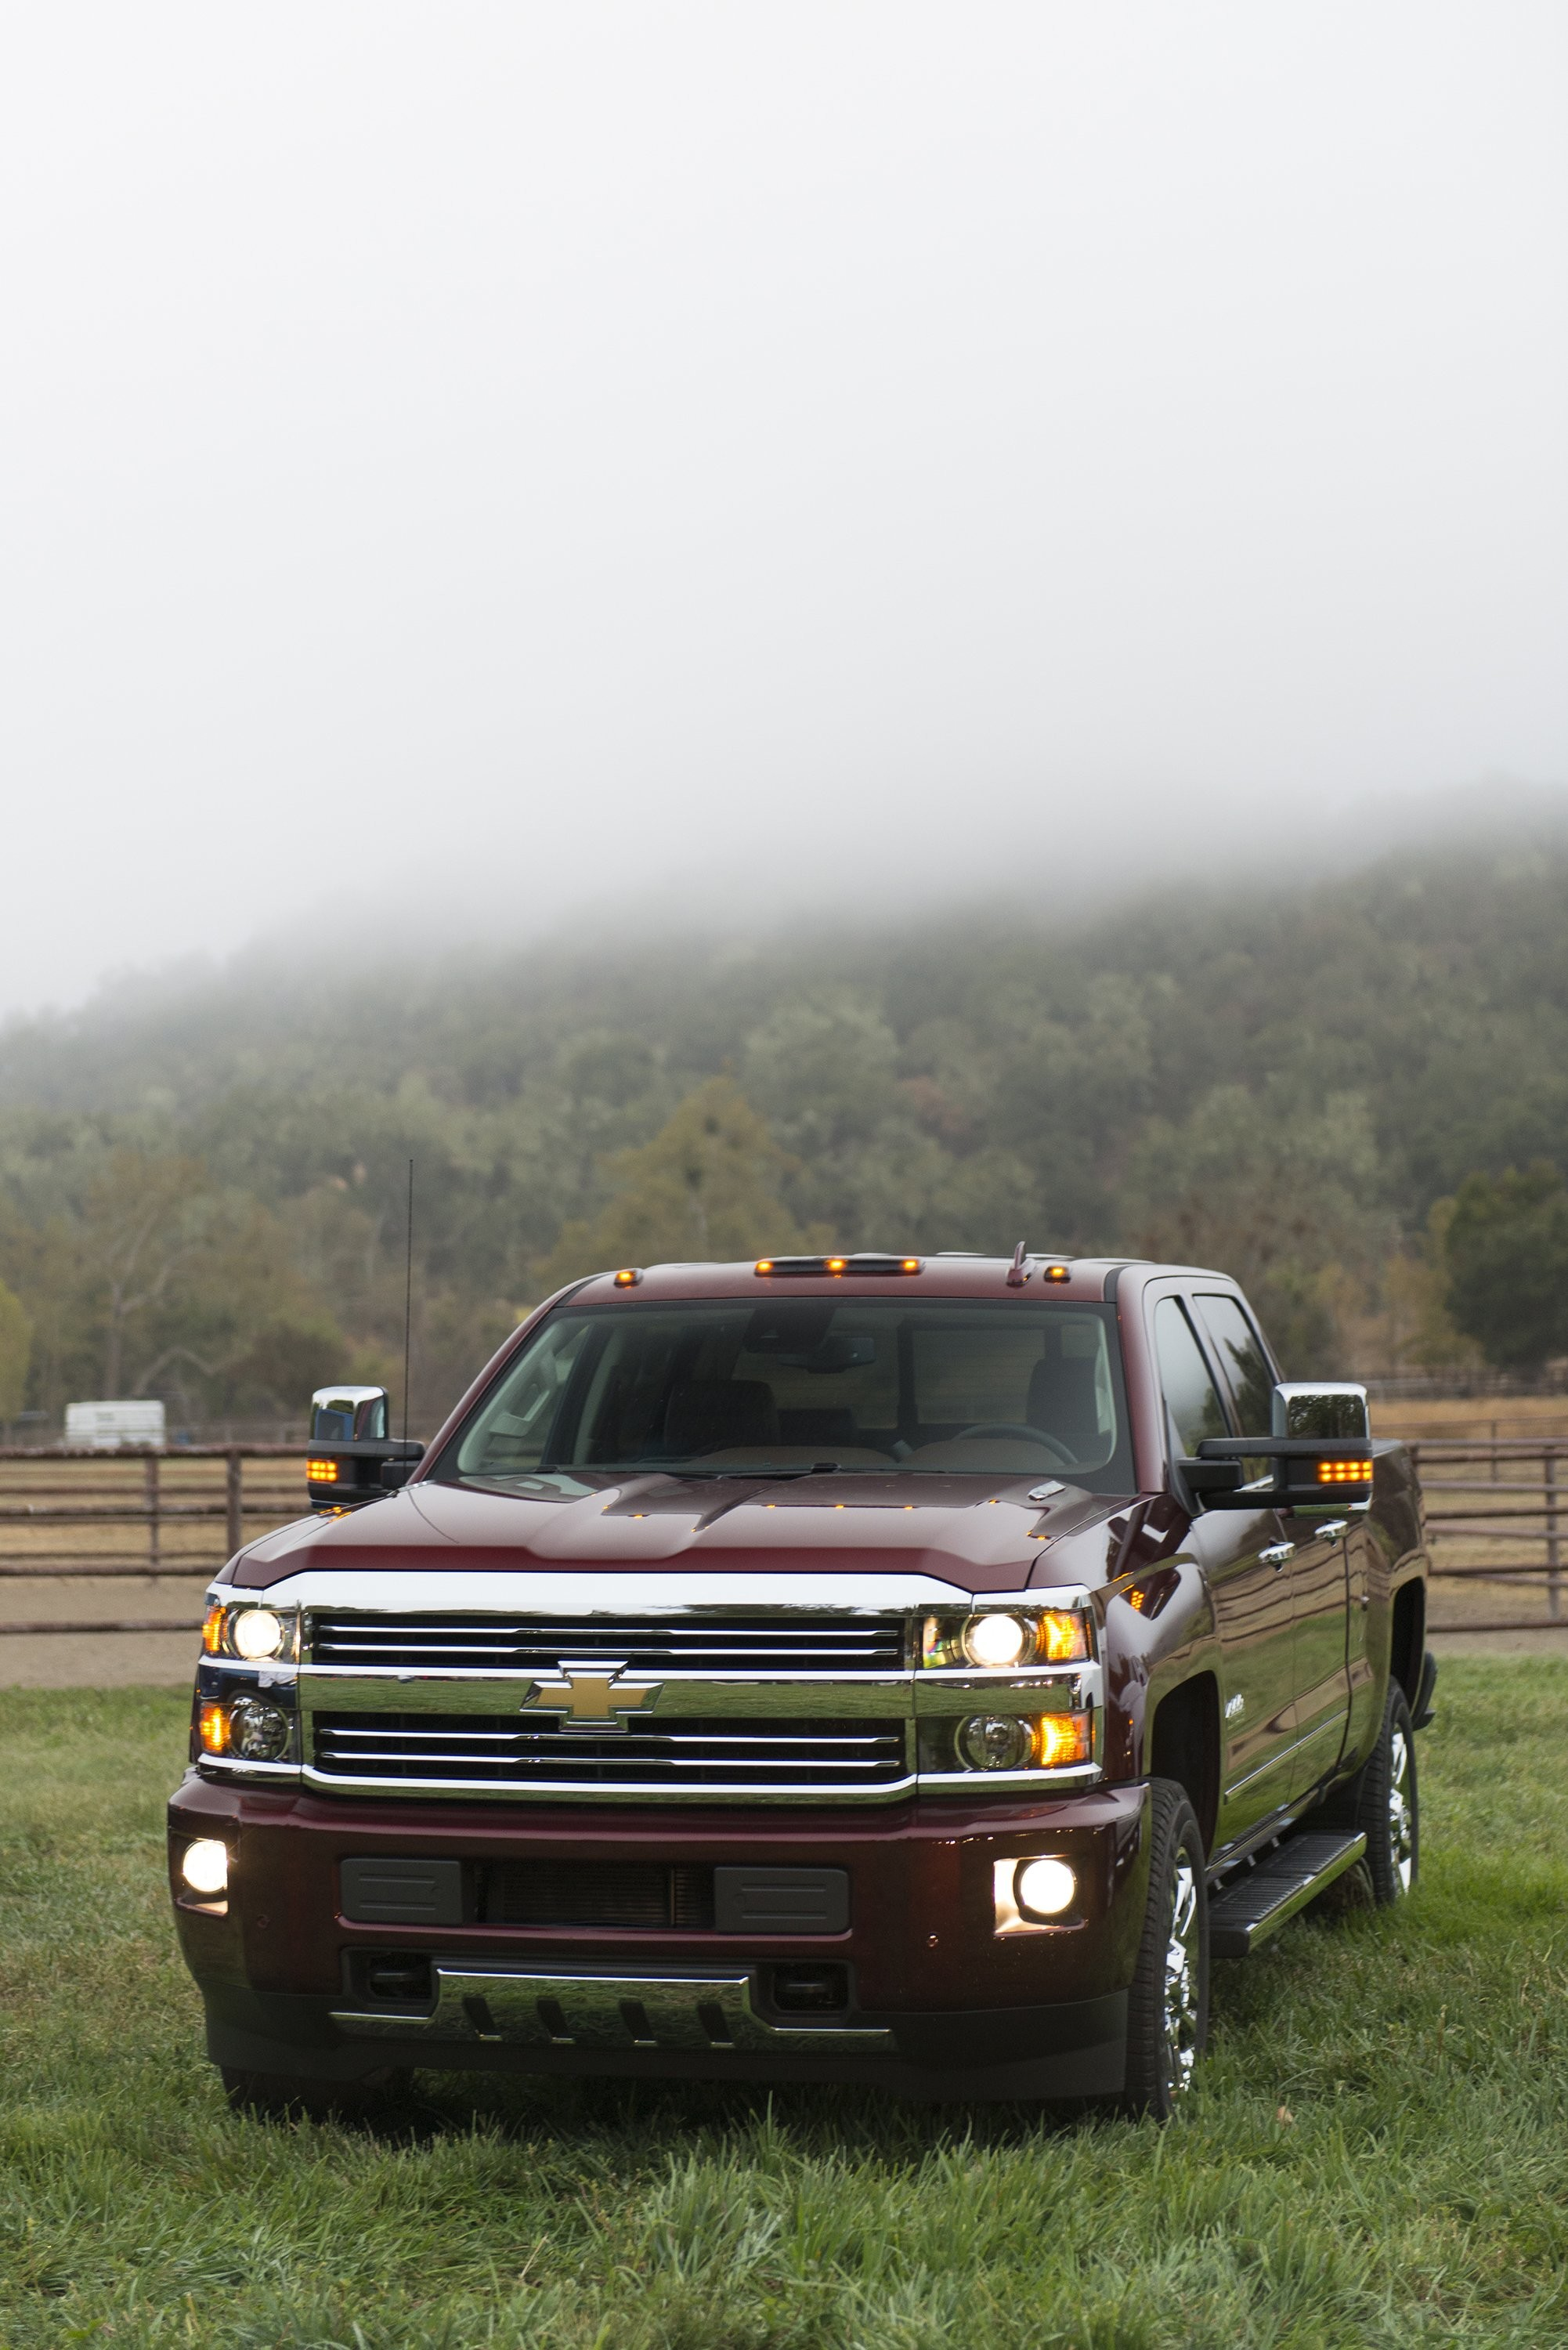 2002x3000 2016 Chevrolet Silverado 2500 H-D High Country Crew Cab pickup wallpaper |   | 815009 | WallpaperUP